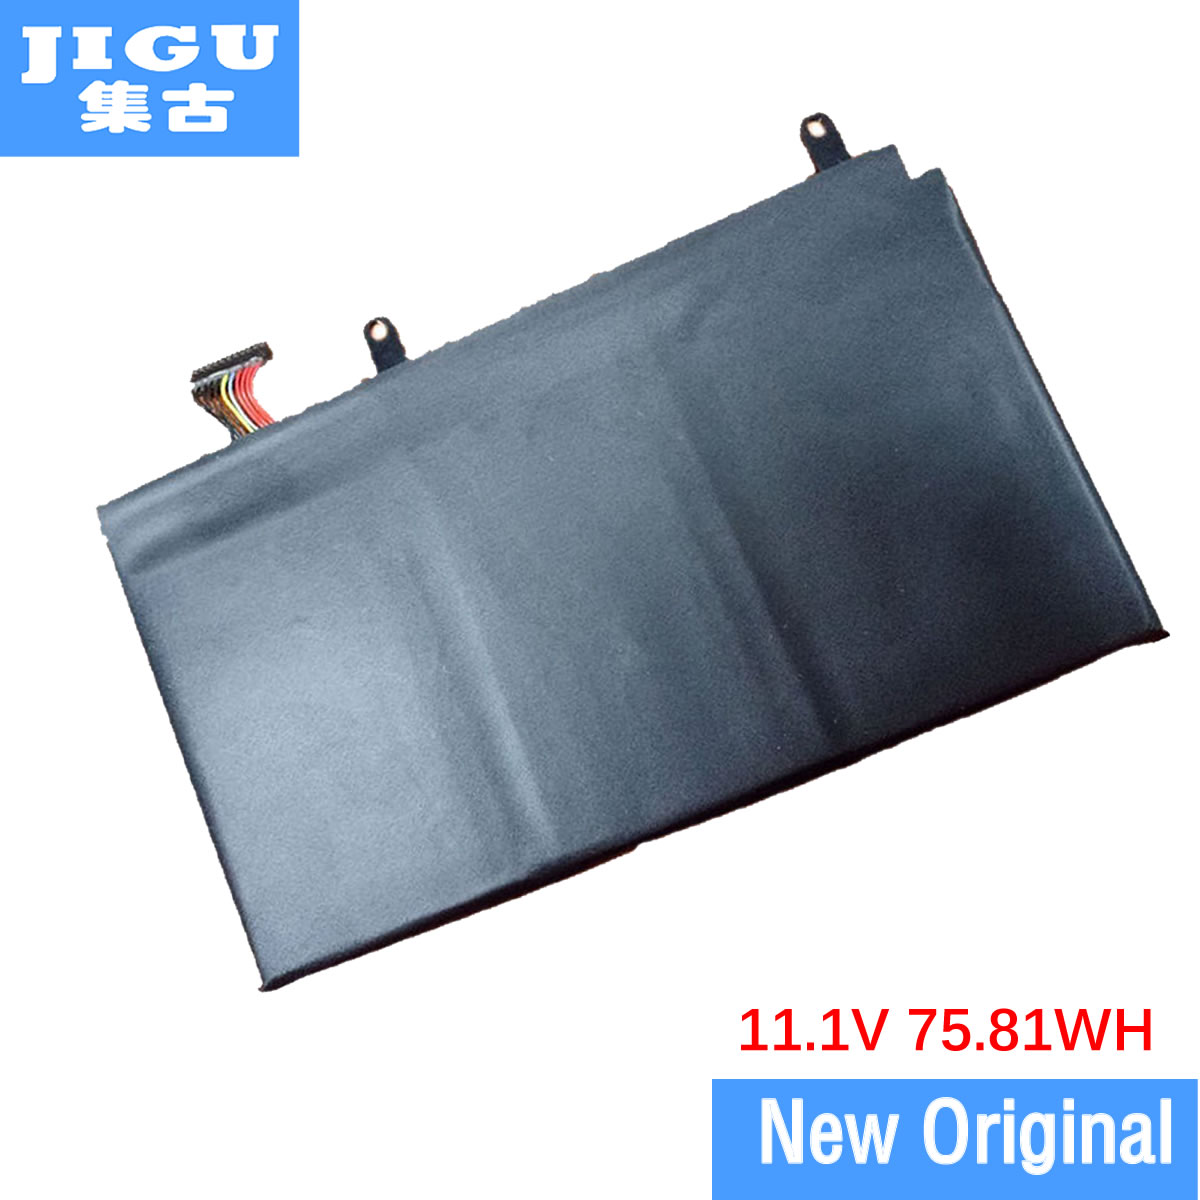 JIGU Original laptop Battery GNS-160 GNS-I60 961TA010FA FOR GIGABYTE P57W P57X v6 P37X v5 jigu laptop battery for dell 8858x 8p3yx 911md vostro 3460 3560 latitude e6120 e6420 e6520 4400mah